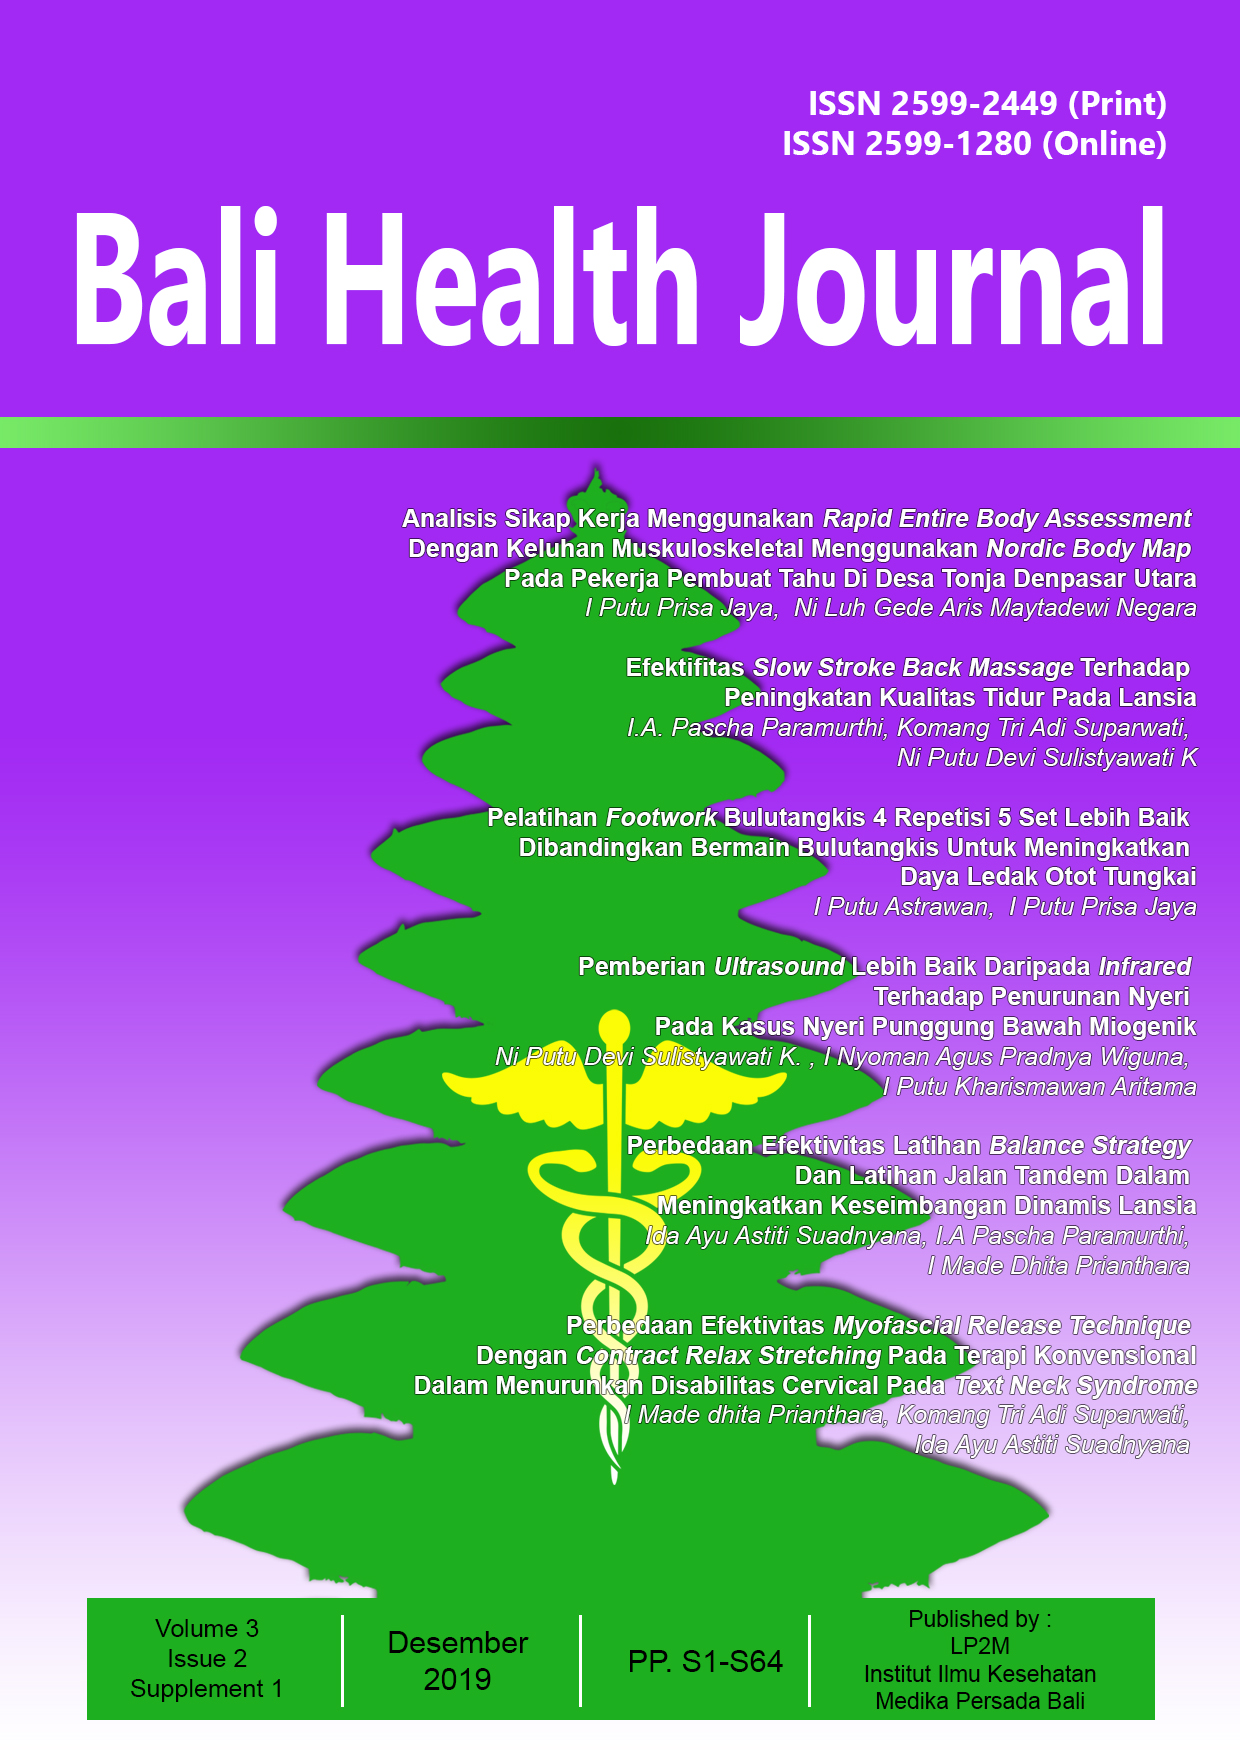 Bali Health Journal Volume 3 Issue 2 Supplement 1